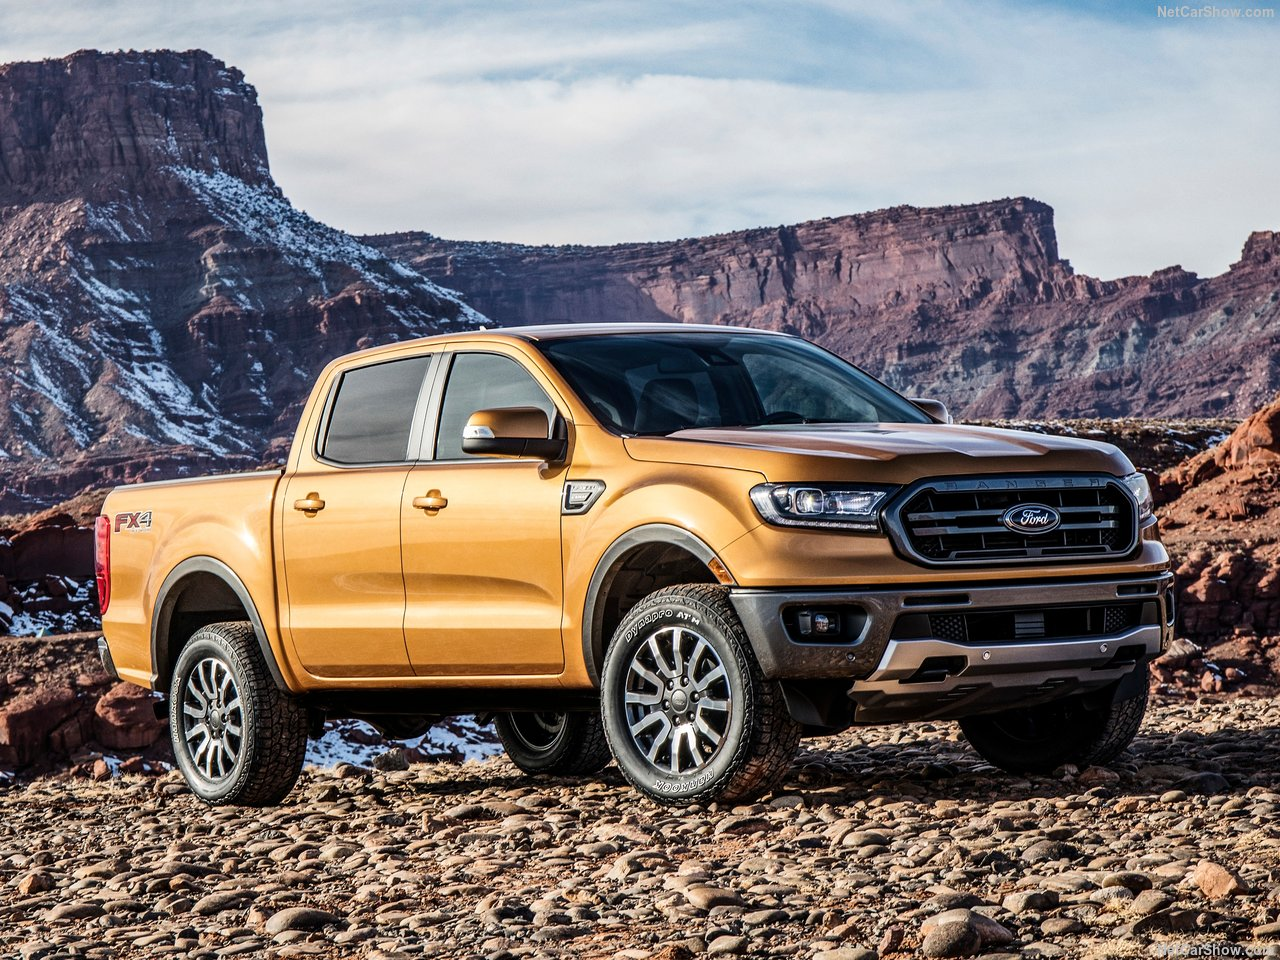 Ford-Ranger_US-Version-2019-1280-02.jpg